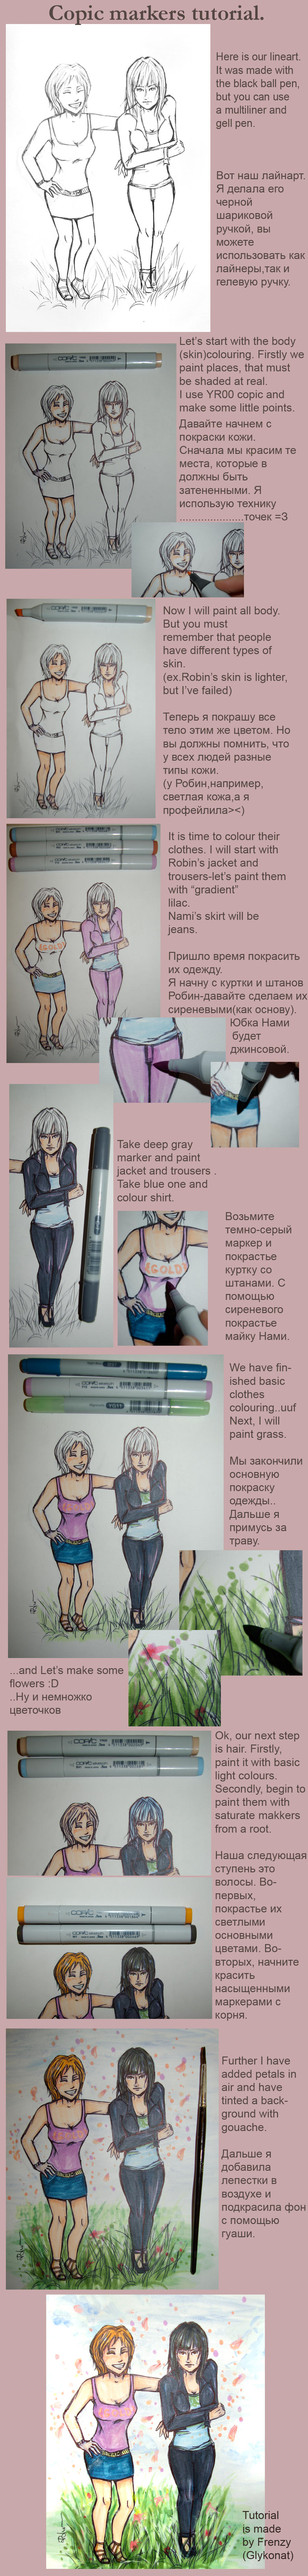 Copic tutorial - OP by GlykoNat